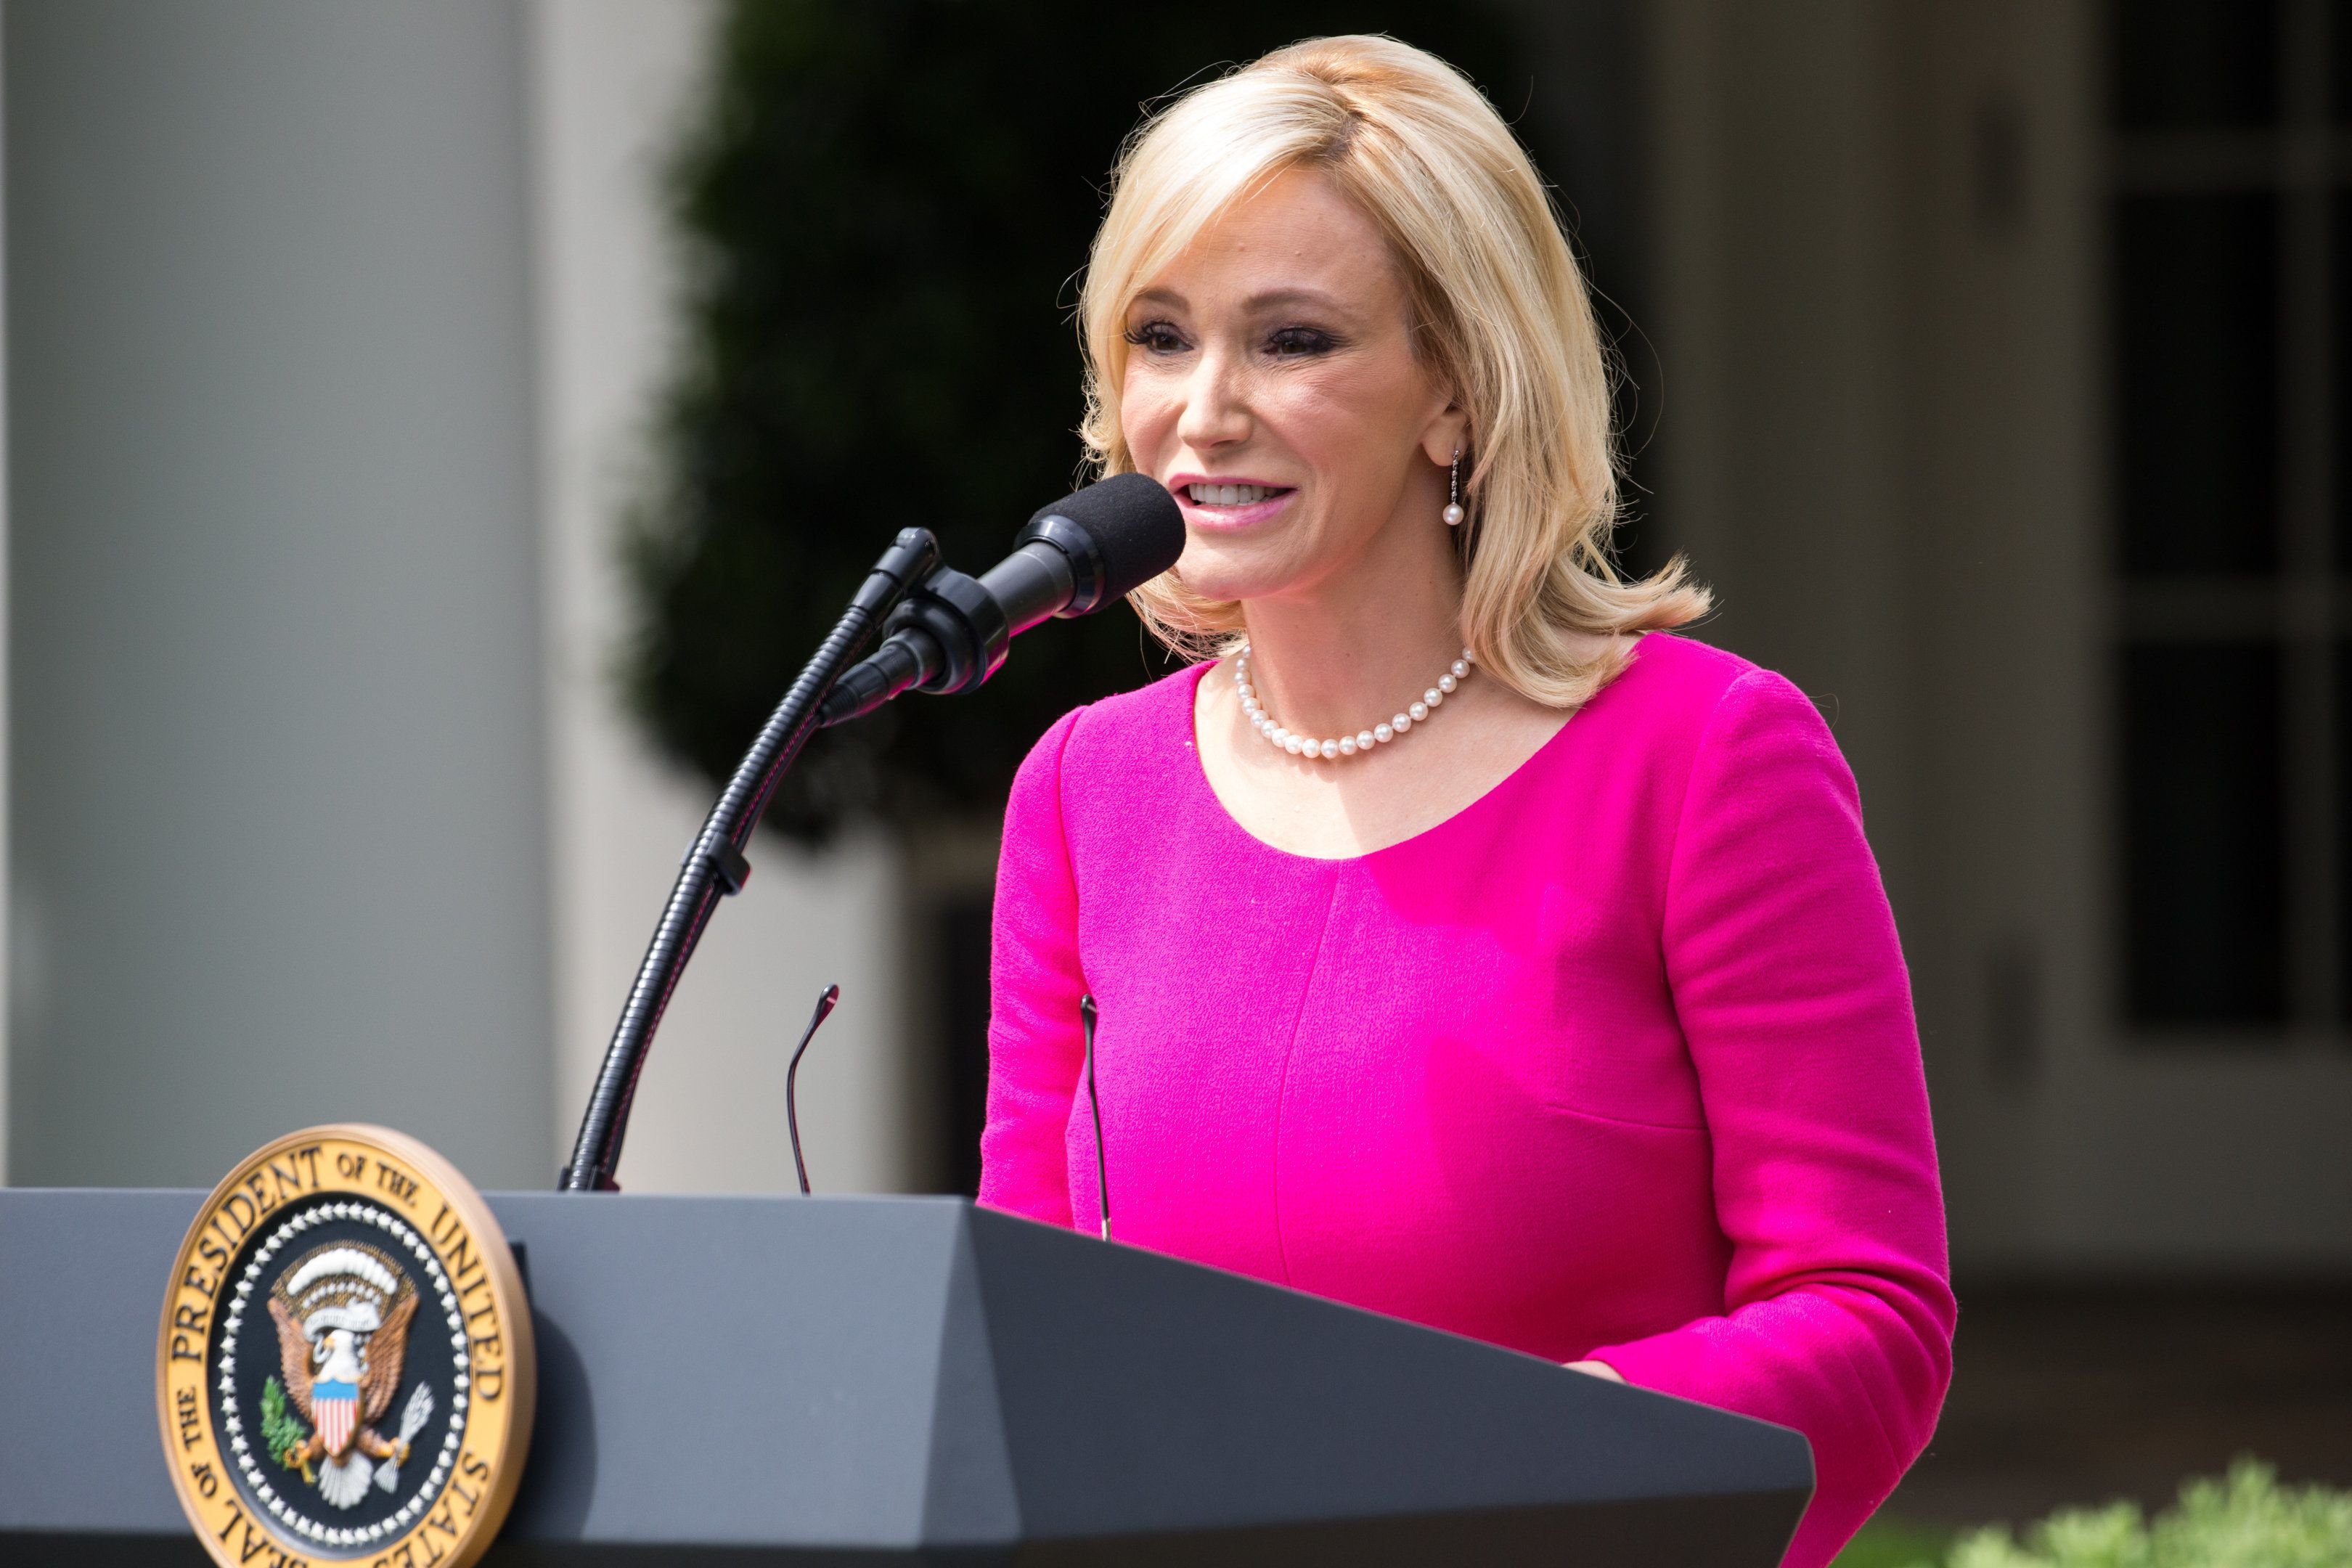 Pastor Paula White spoke at the National Day of Prayer ceremony, in the Rose Garden of the White House, On Thursday, May 4, 2017. (Photo by Cheriss May/NurPhoto via Getty Images)